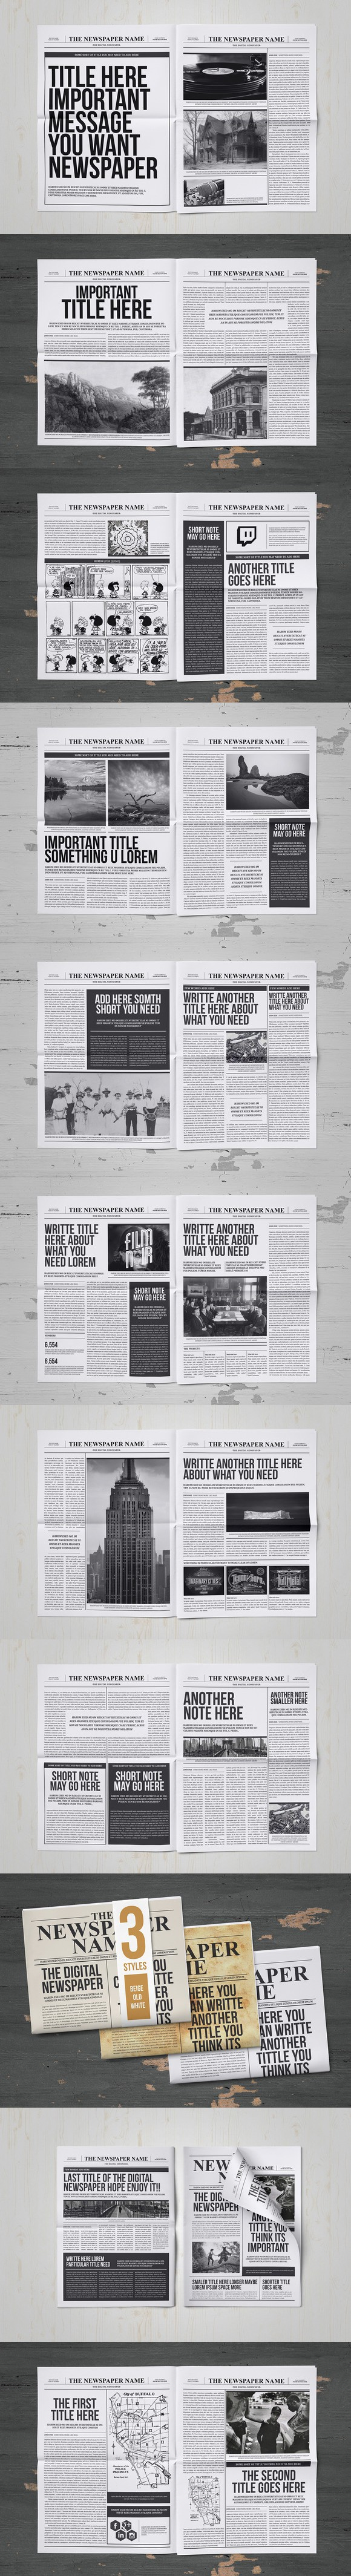 Classy Newspaper Indesign Template | Magazine Templates | Pinterest